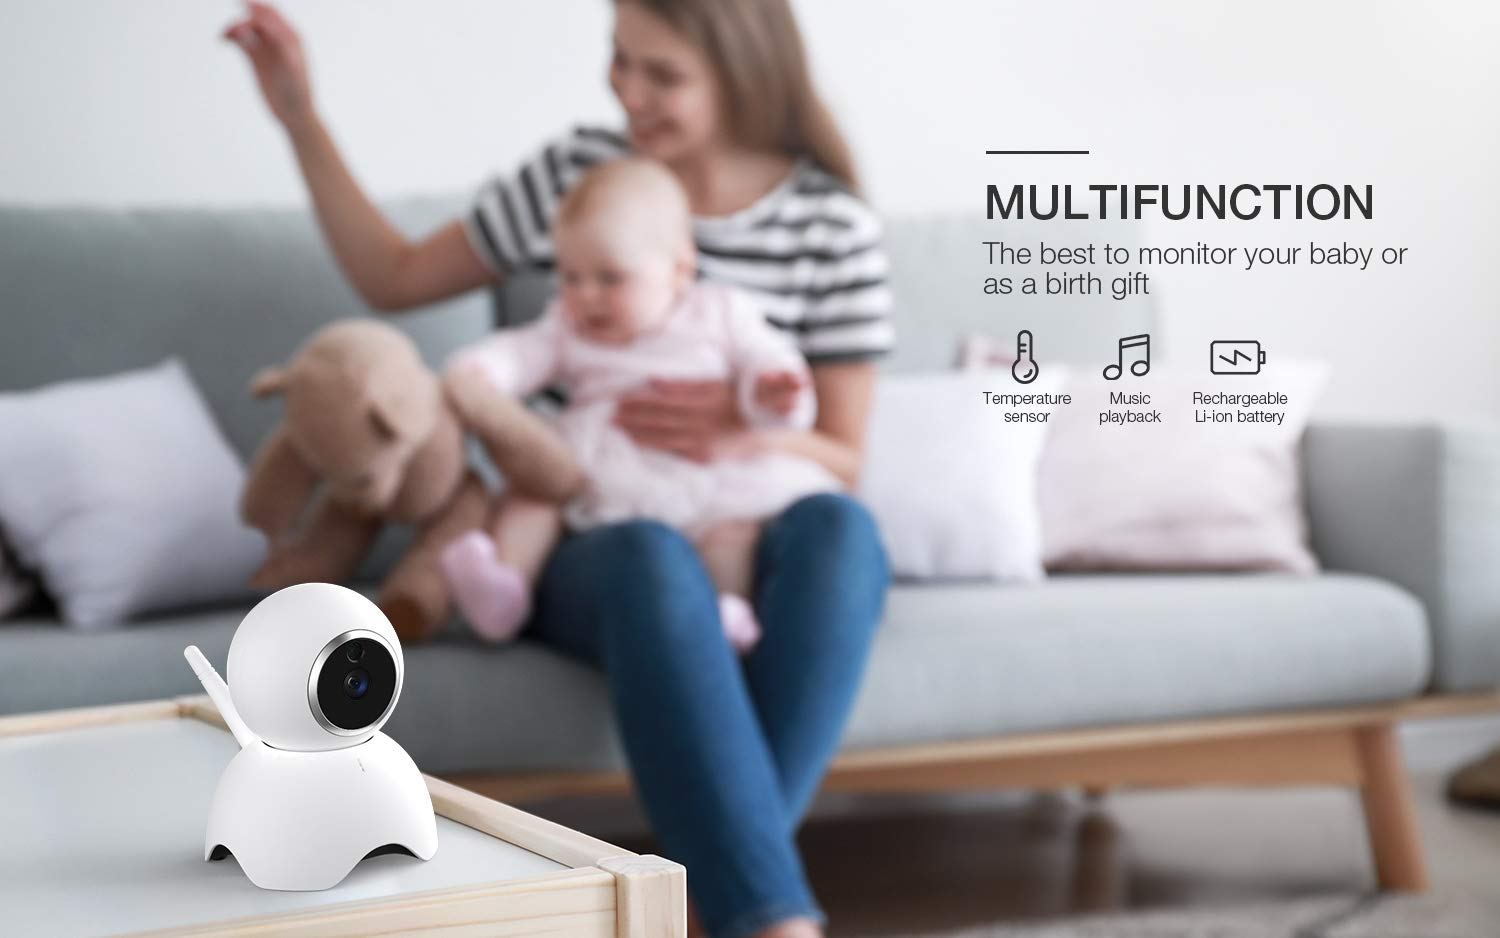 Baby Monitor BOIFUN Baby Video Camera with 5 1280x720P HD Screen 2000mAh Rechargeable Battery with VOX Night Vision Temperature Monitor Two-Way Talk 355 Degree Remote Control Camera Baby//Elder//Pet